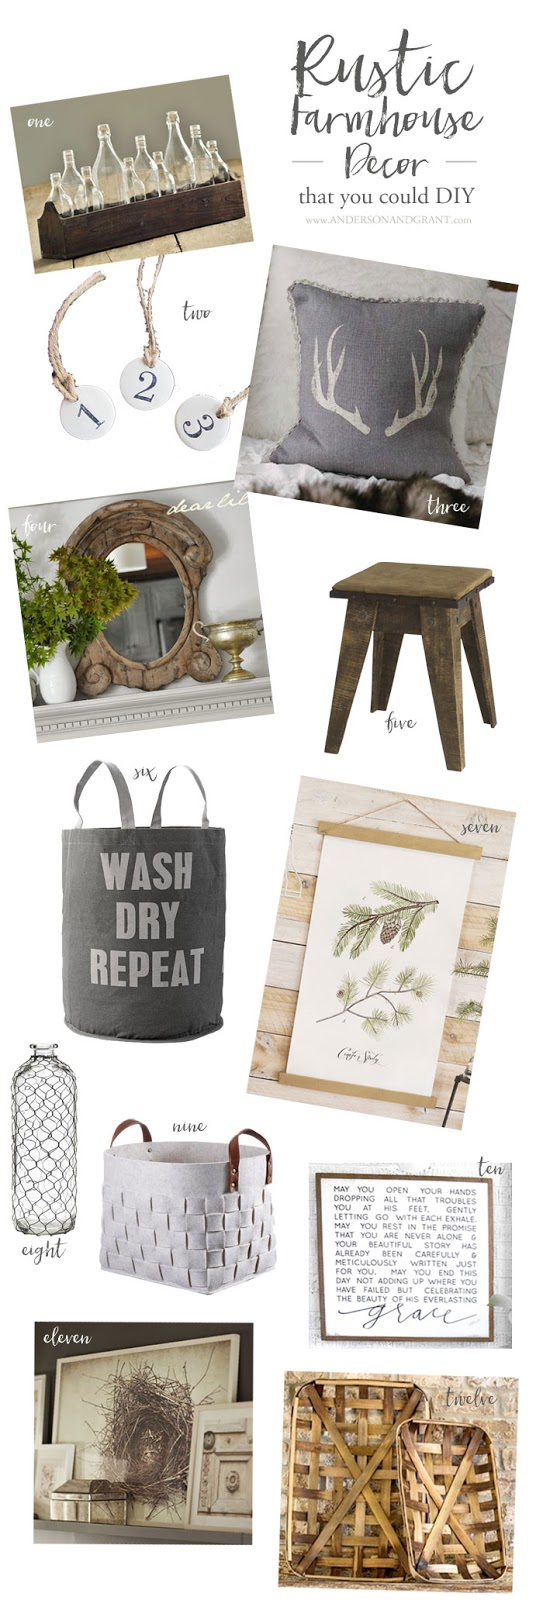 anderson grant rustic farmhouse decor i want to buy but could diy